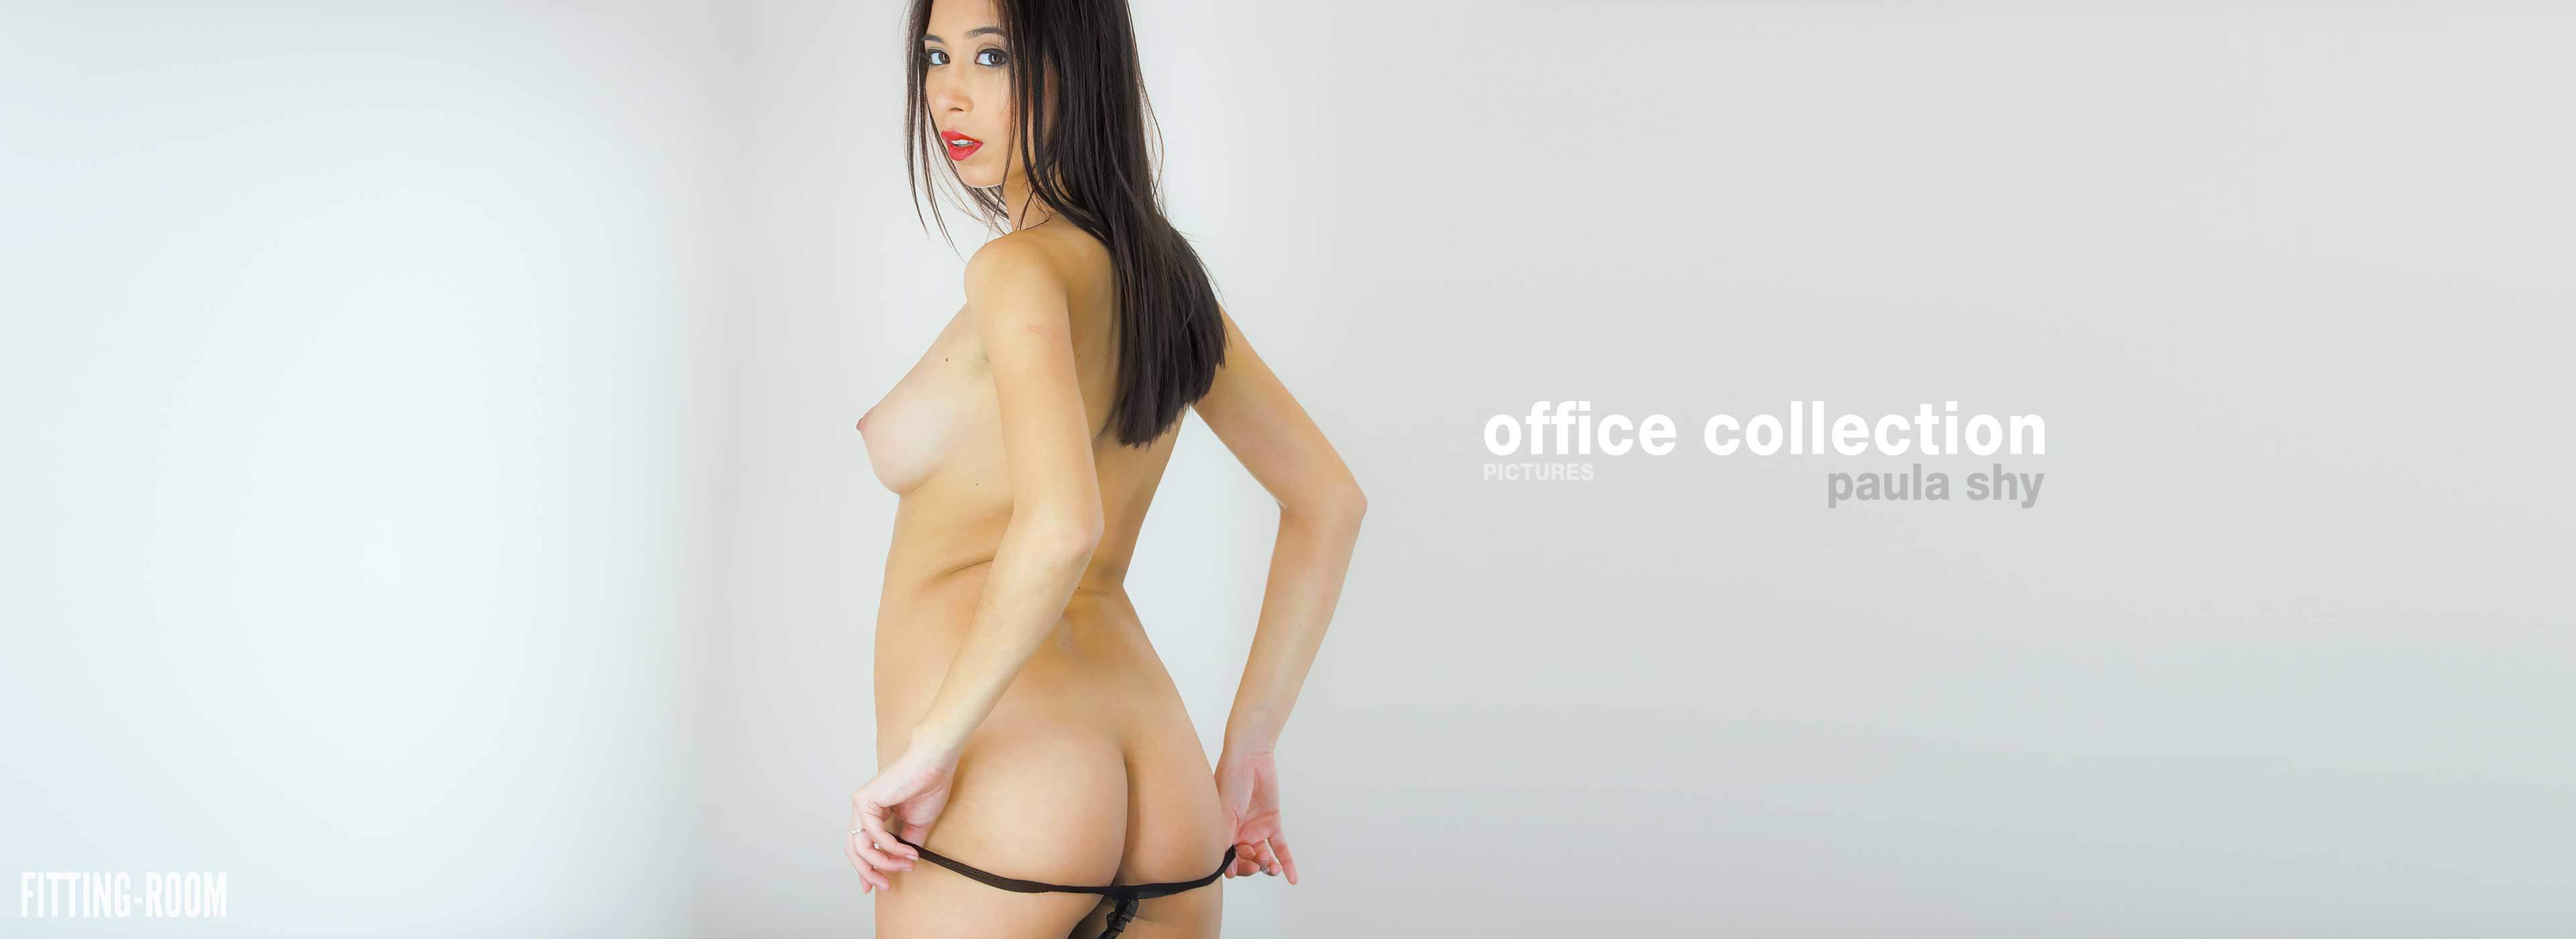 25 year old Paula Shy gets horny at the office and pops into the fitting room after to masturbate with her vibrator